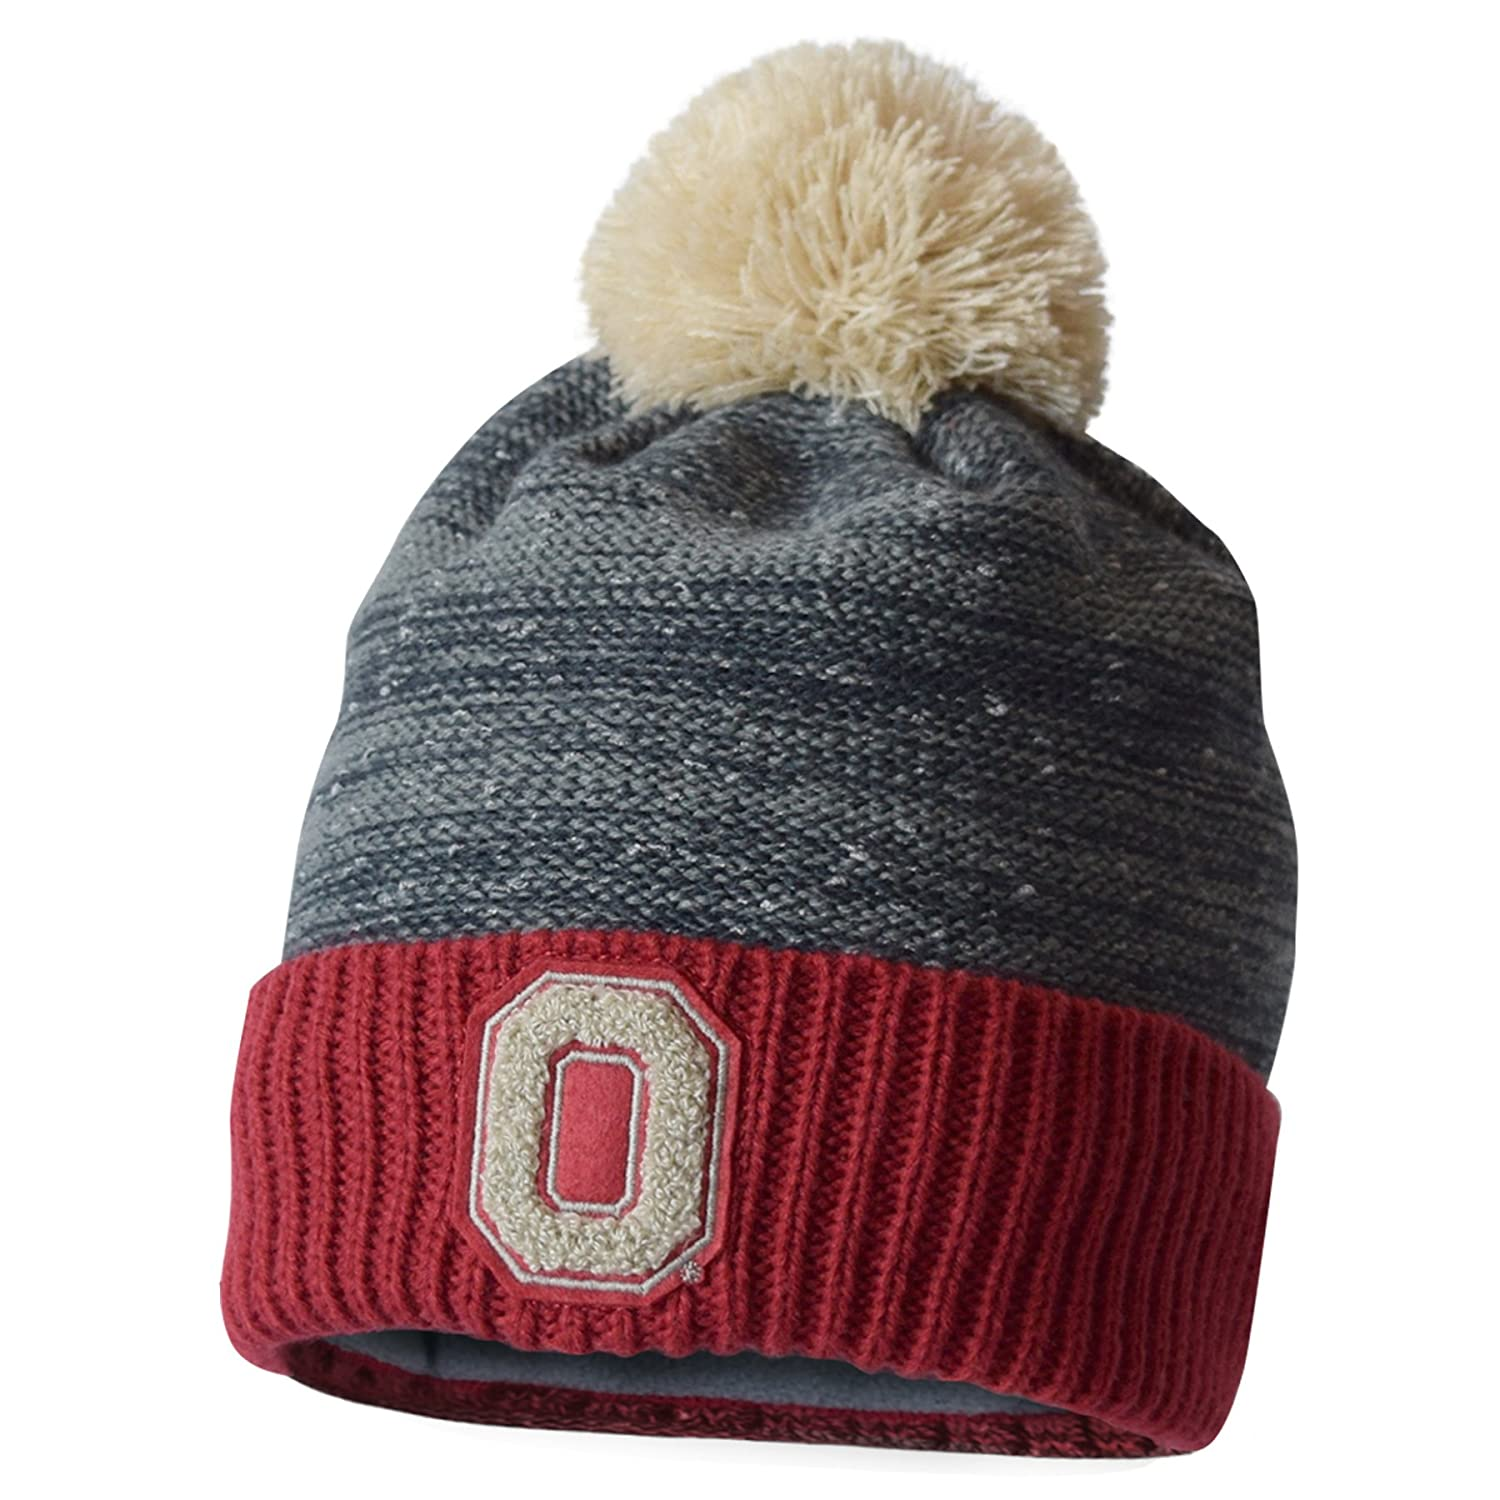 check out a826f 0d404 Amazon.com   NCAA Ohio State Buckeyes Adult Nothing to Fear Cuff Knit Pom,  One Size, Graphite Vintage White   Sports   Outdoors